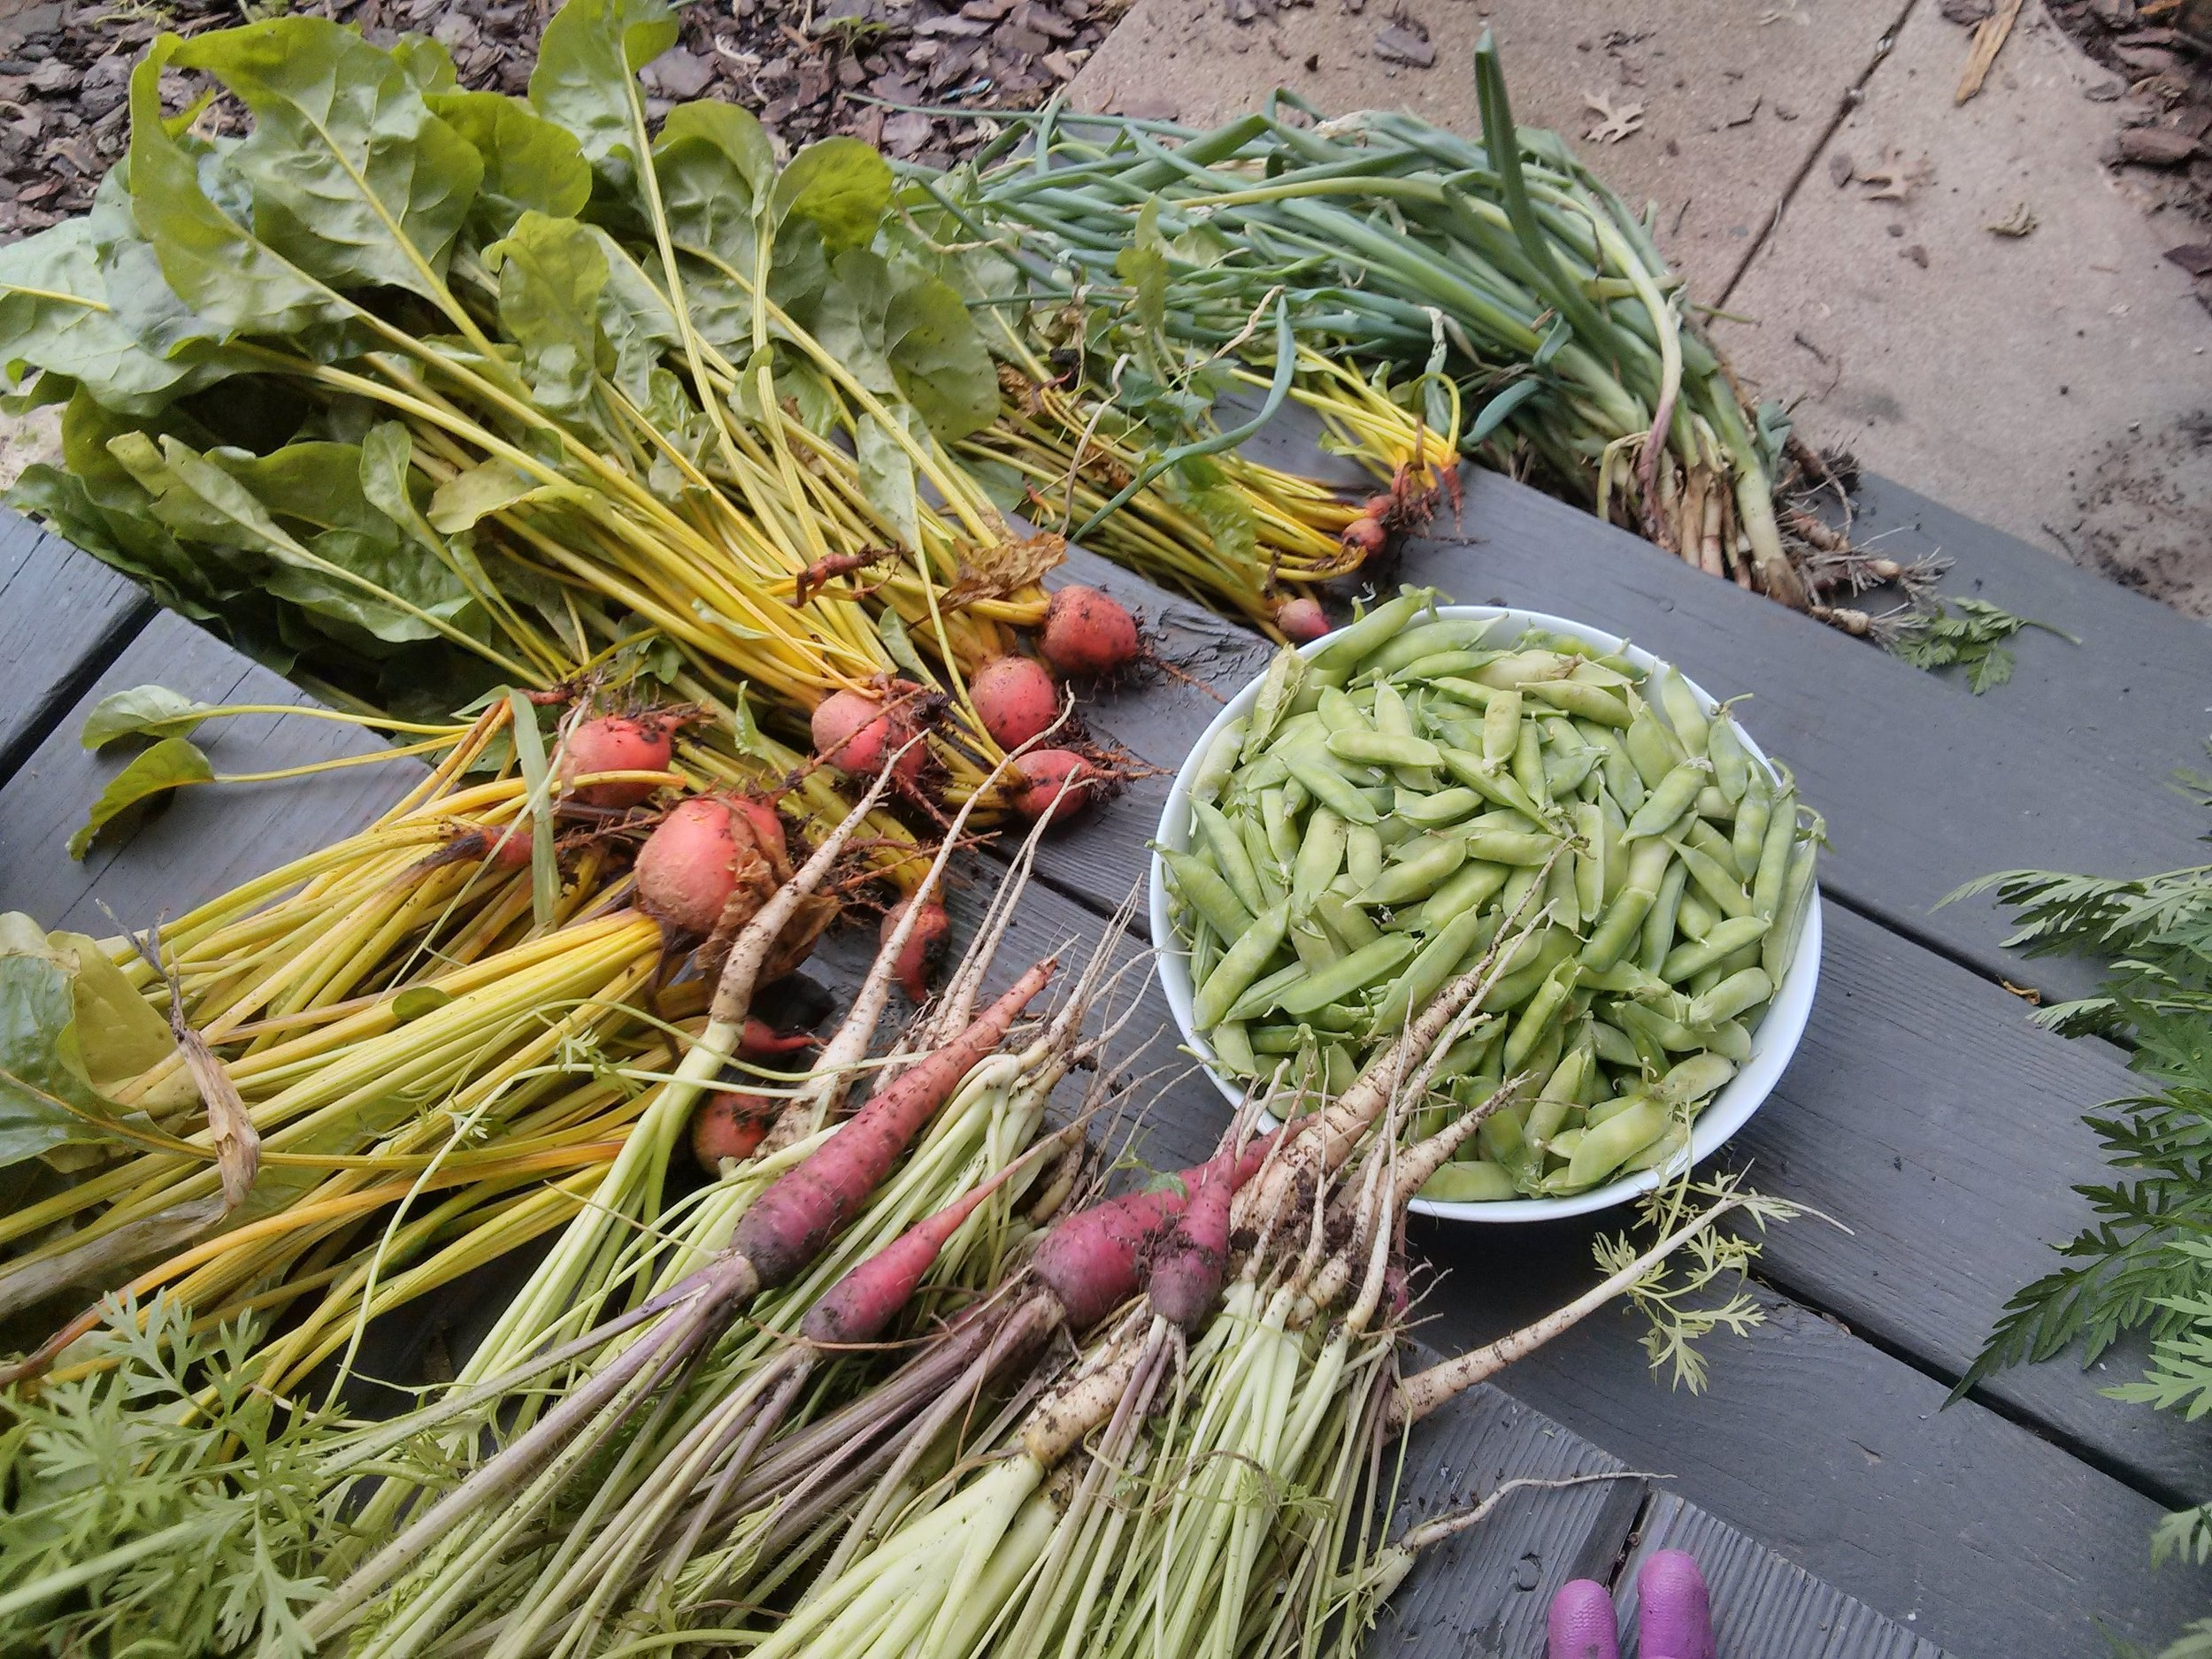 grow your own food - We can help!